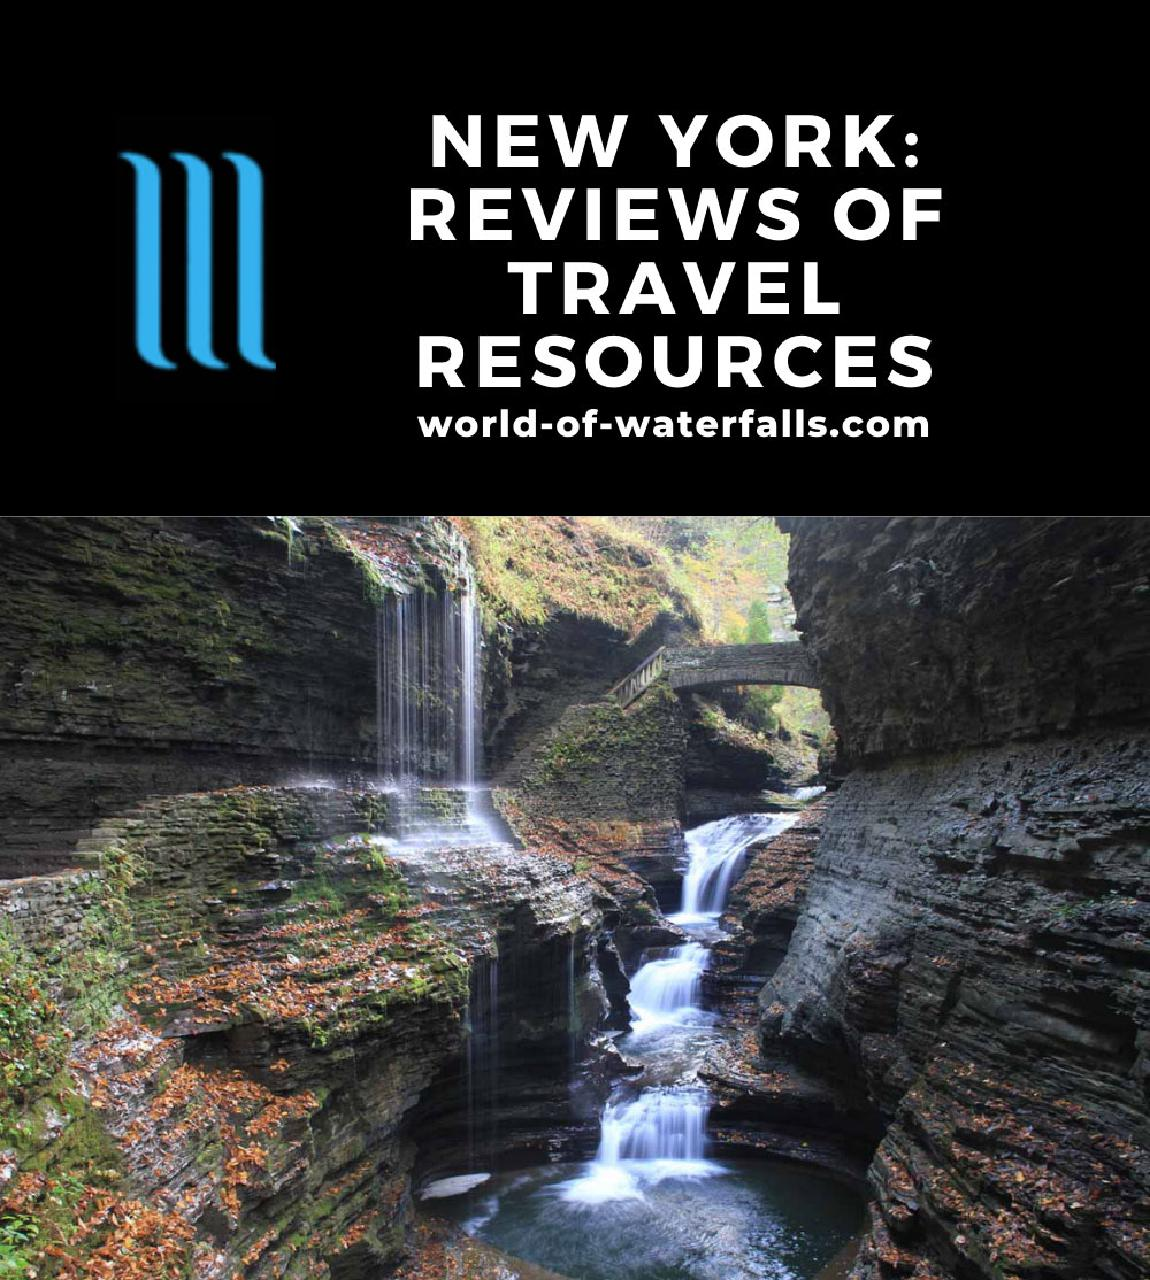 New York: Reviews of Travel Resources